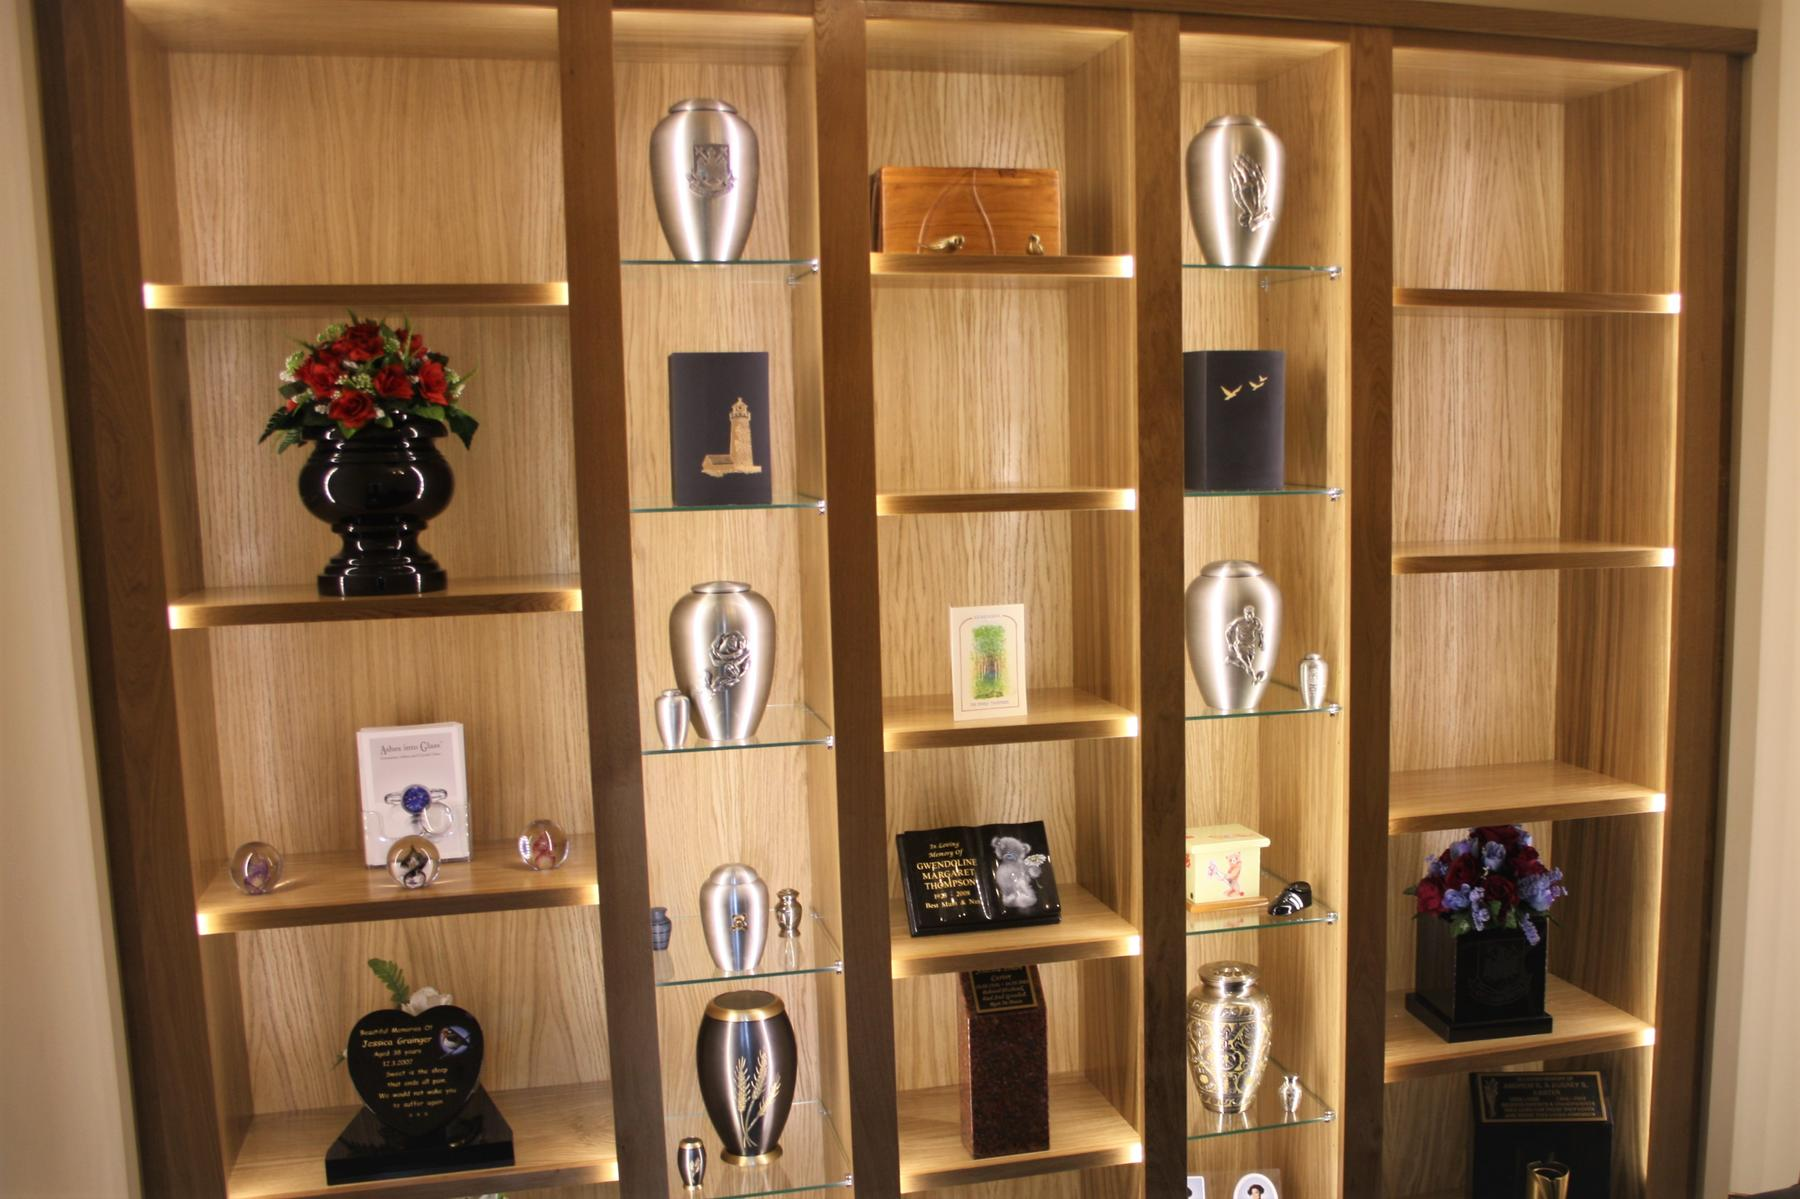 Crematoria display shelves2